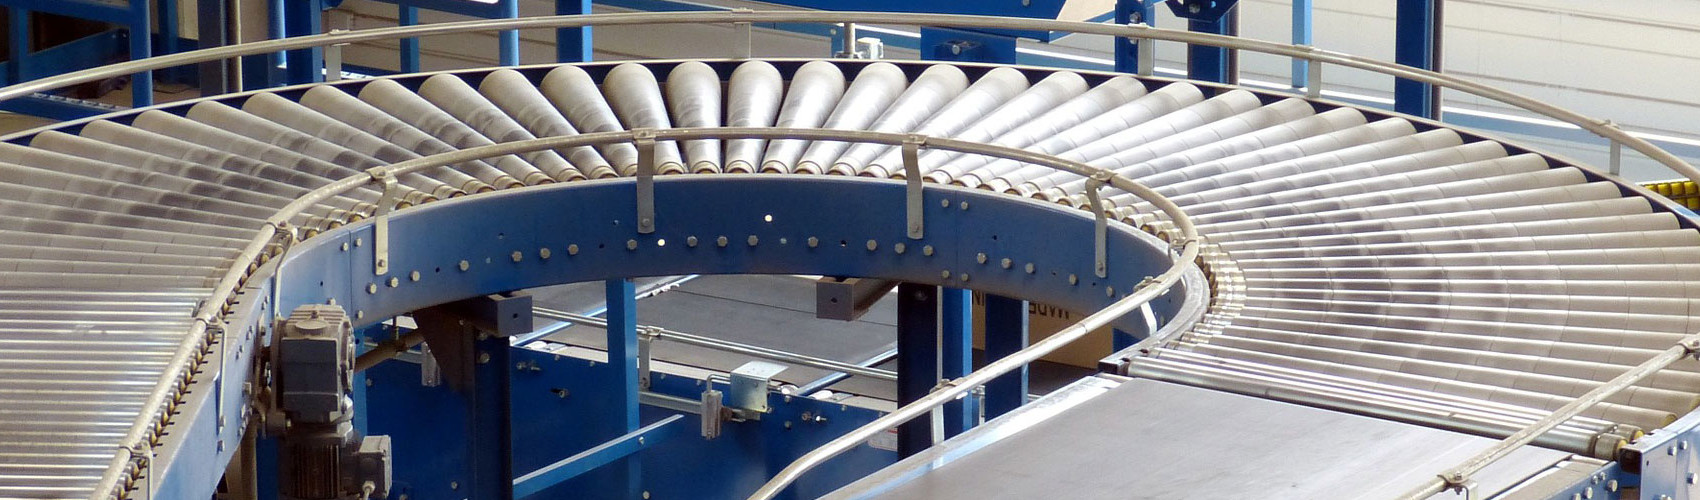 conveyor belt control systems chennai